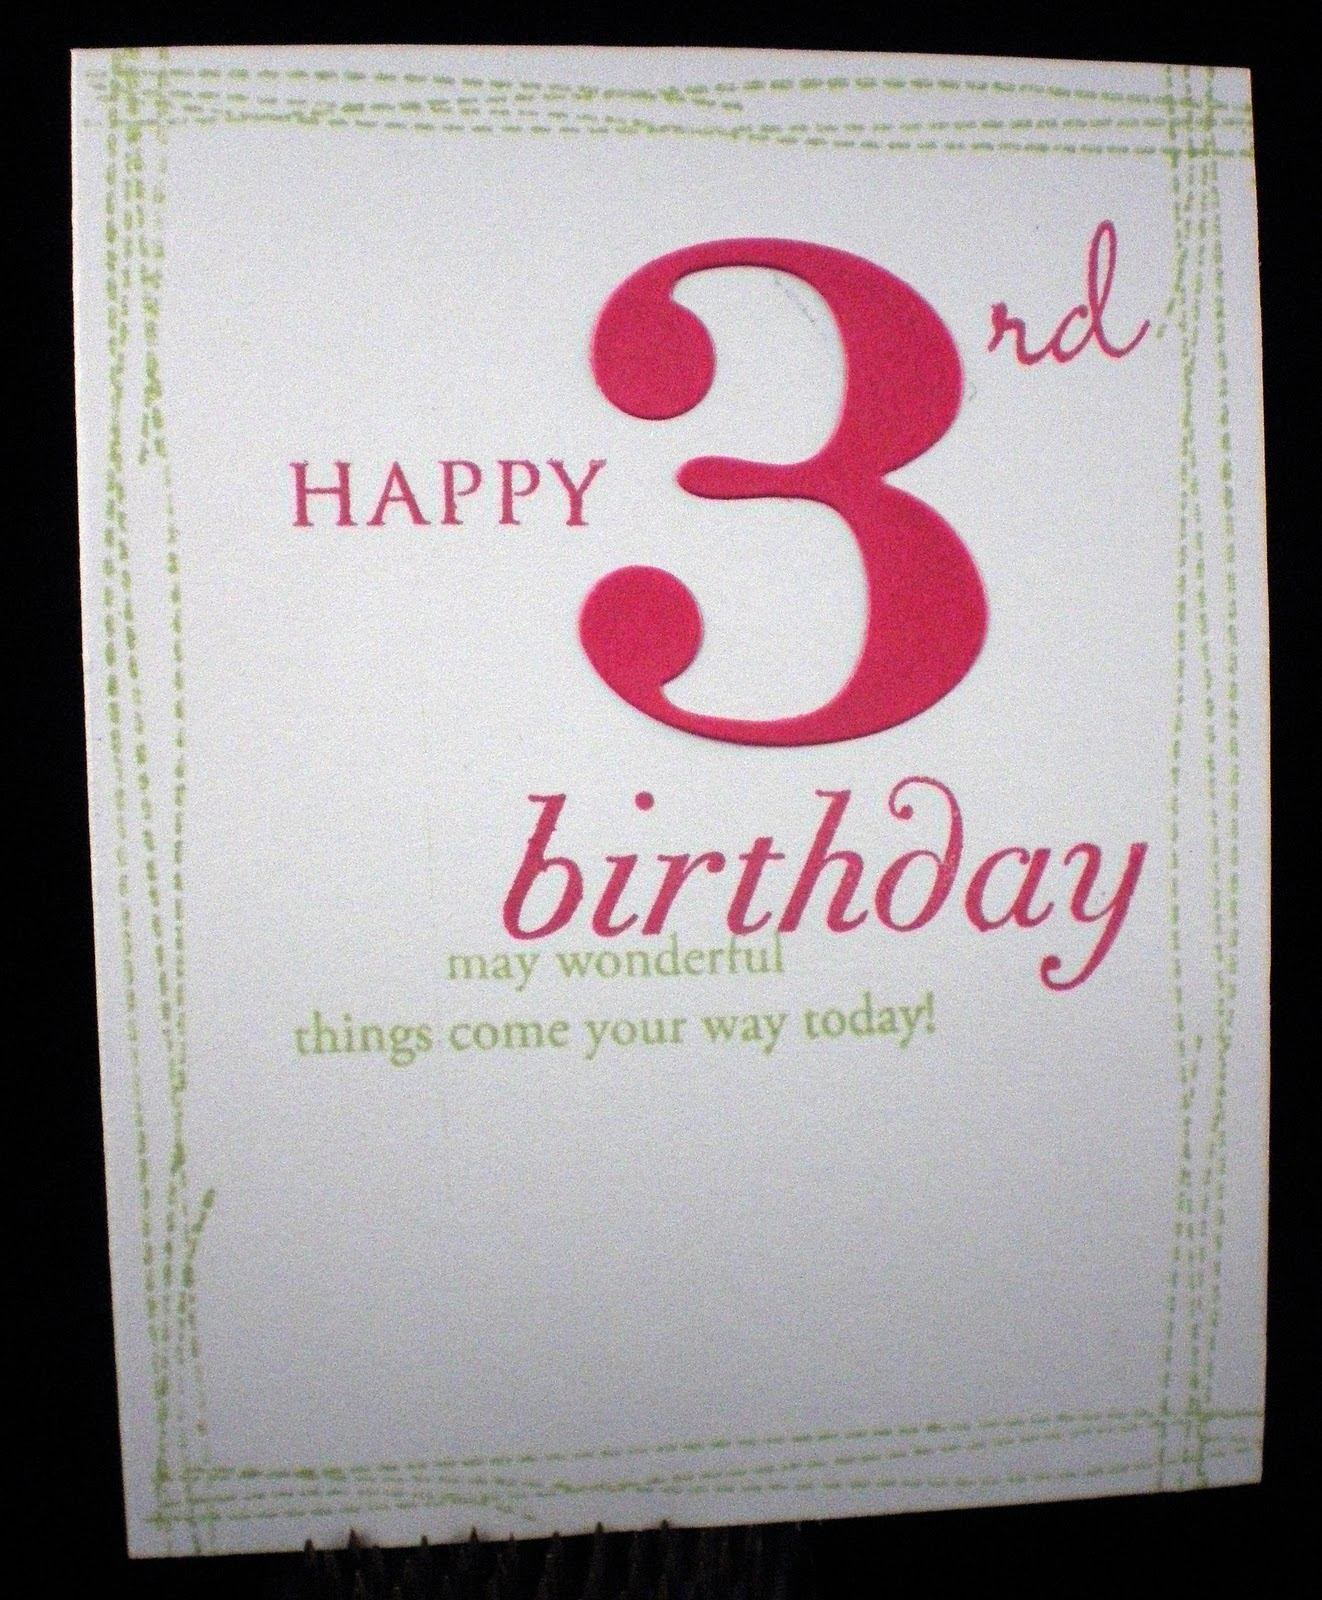 January birthday ecard pictures